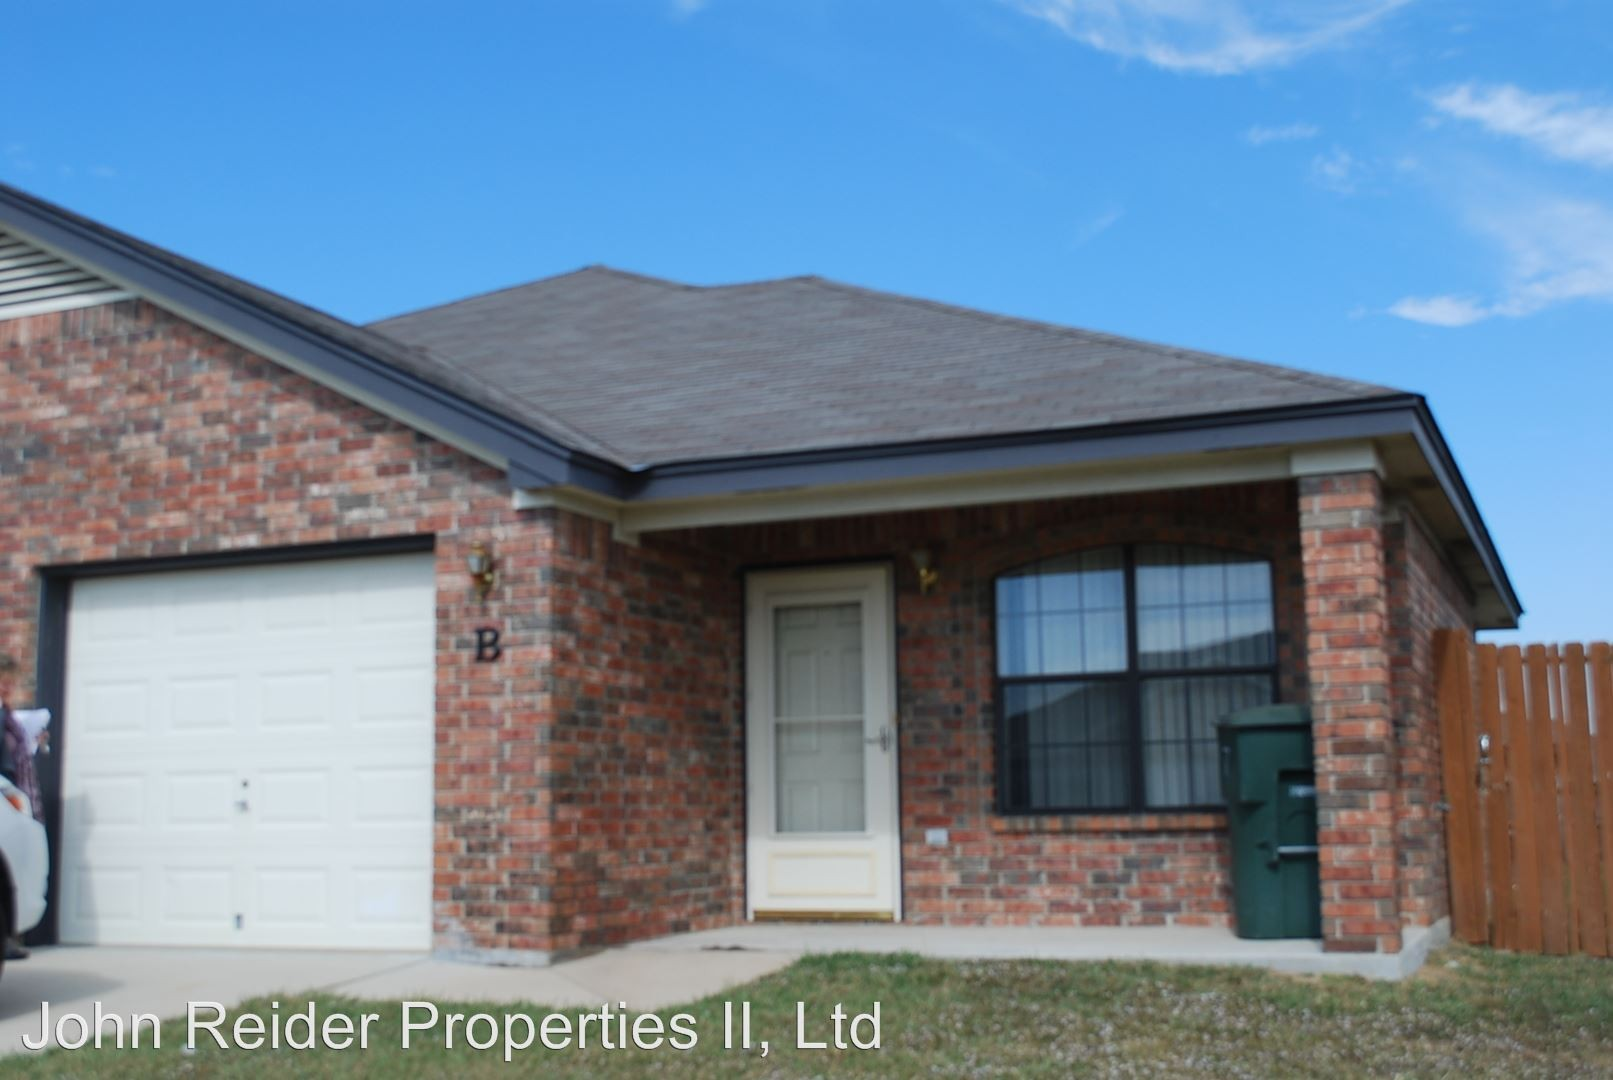 1304 Chips Dr Killeen Tx 76549 3 Bedroom Apartment For Rent For 795 Month Zumper